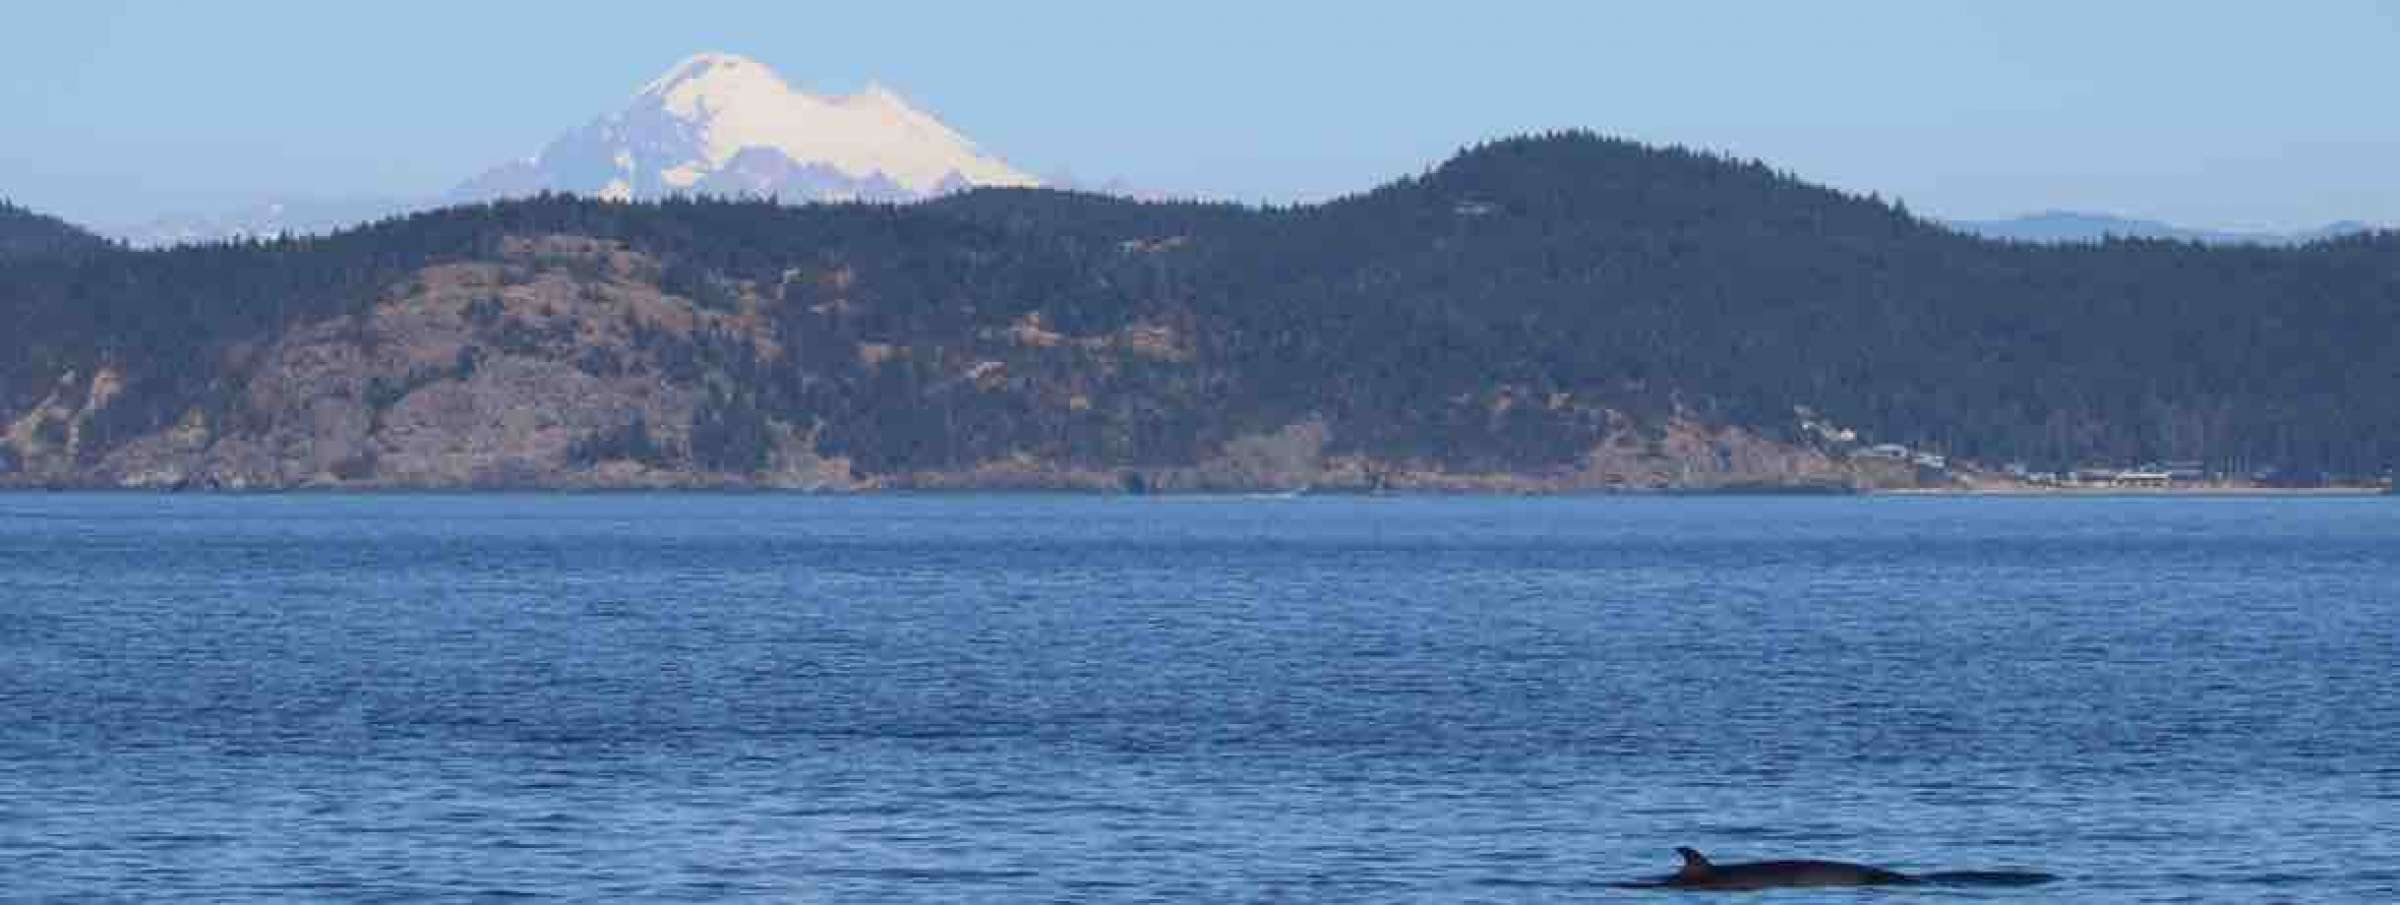 San Juan Islands Whale Watching Minke Whales